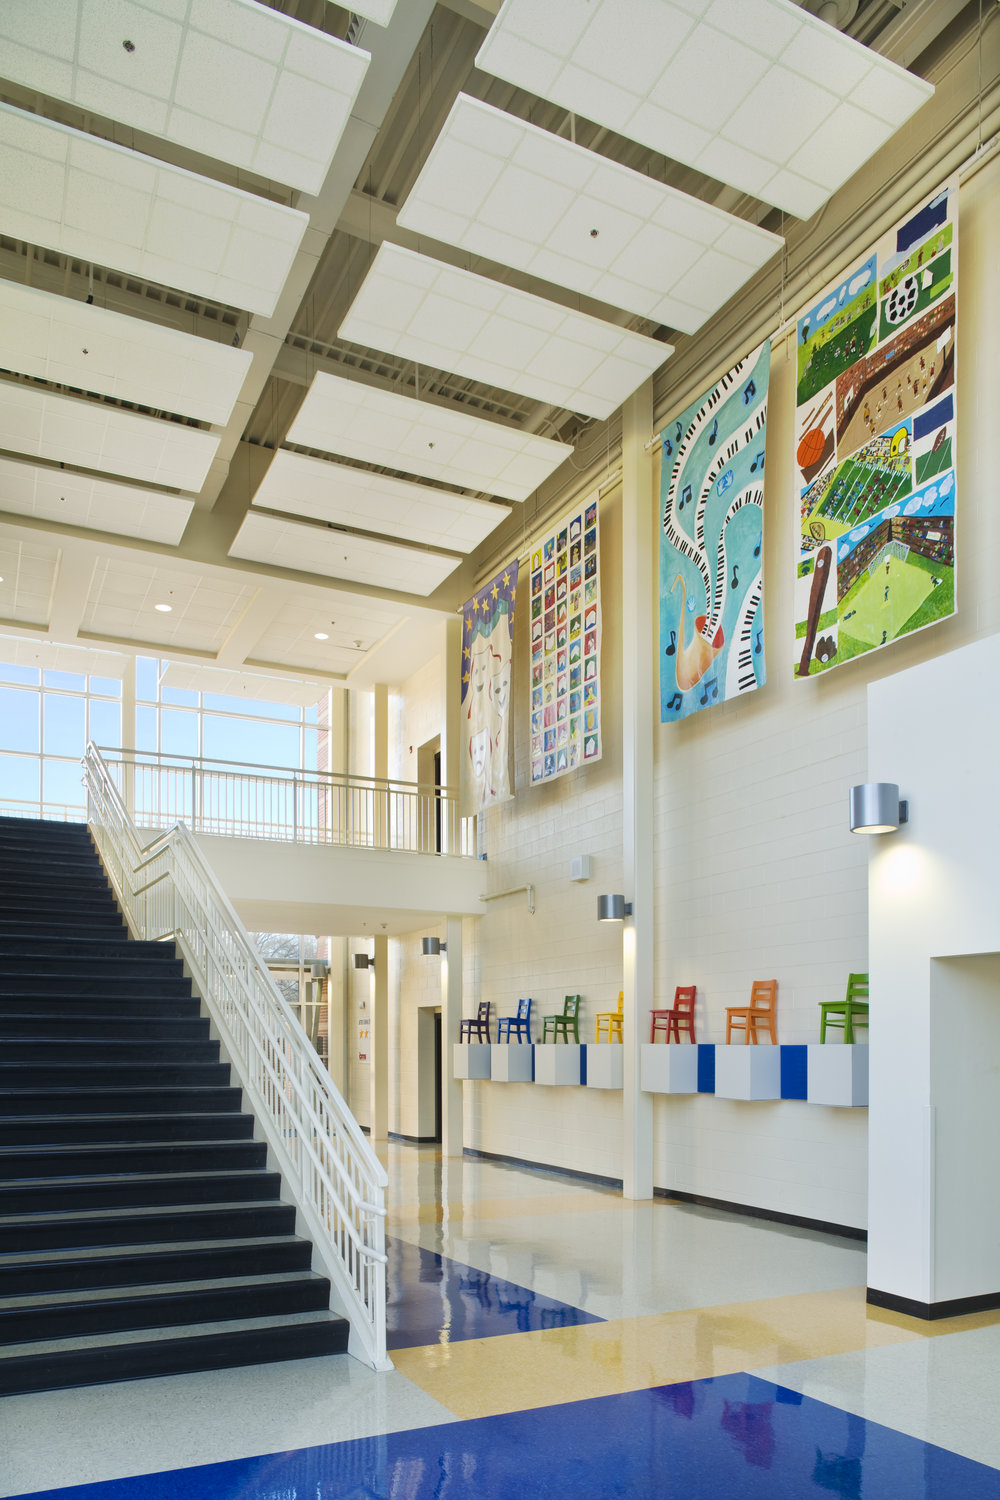 ADW-K-12-Education-Dilworth-Elementary-School-Charlotte-NC-Lobby.jpg